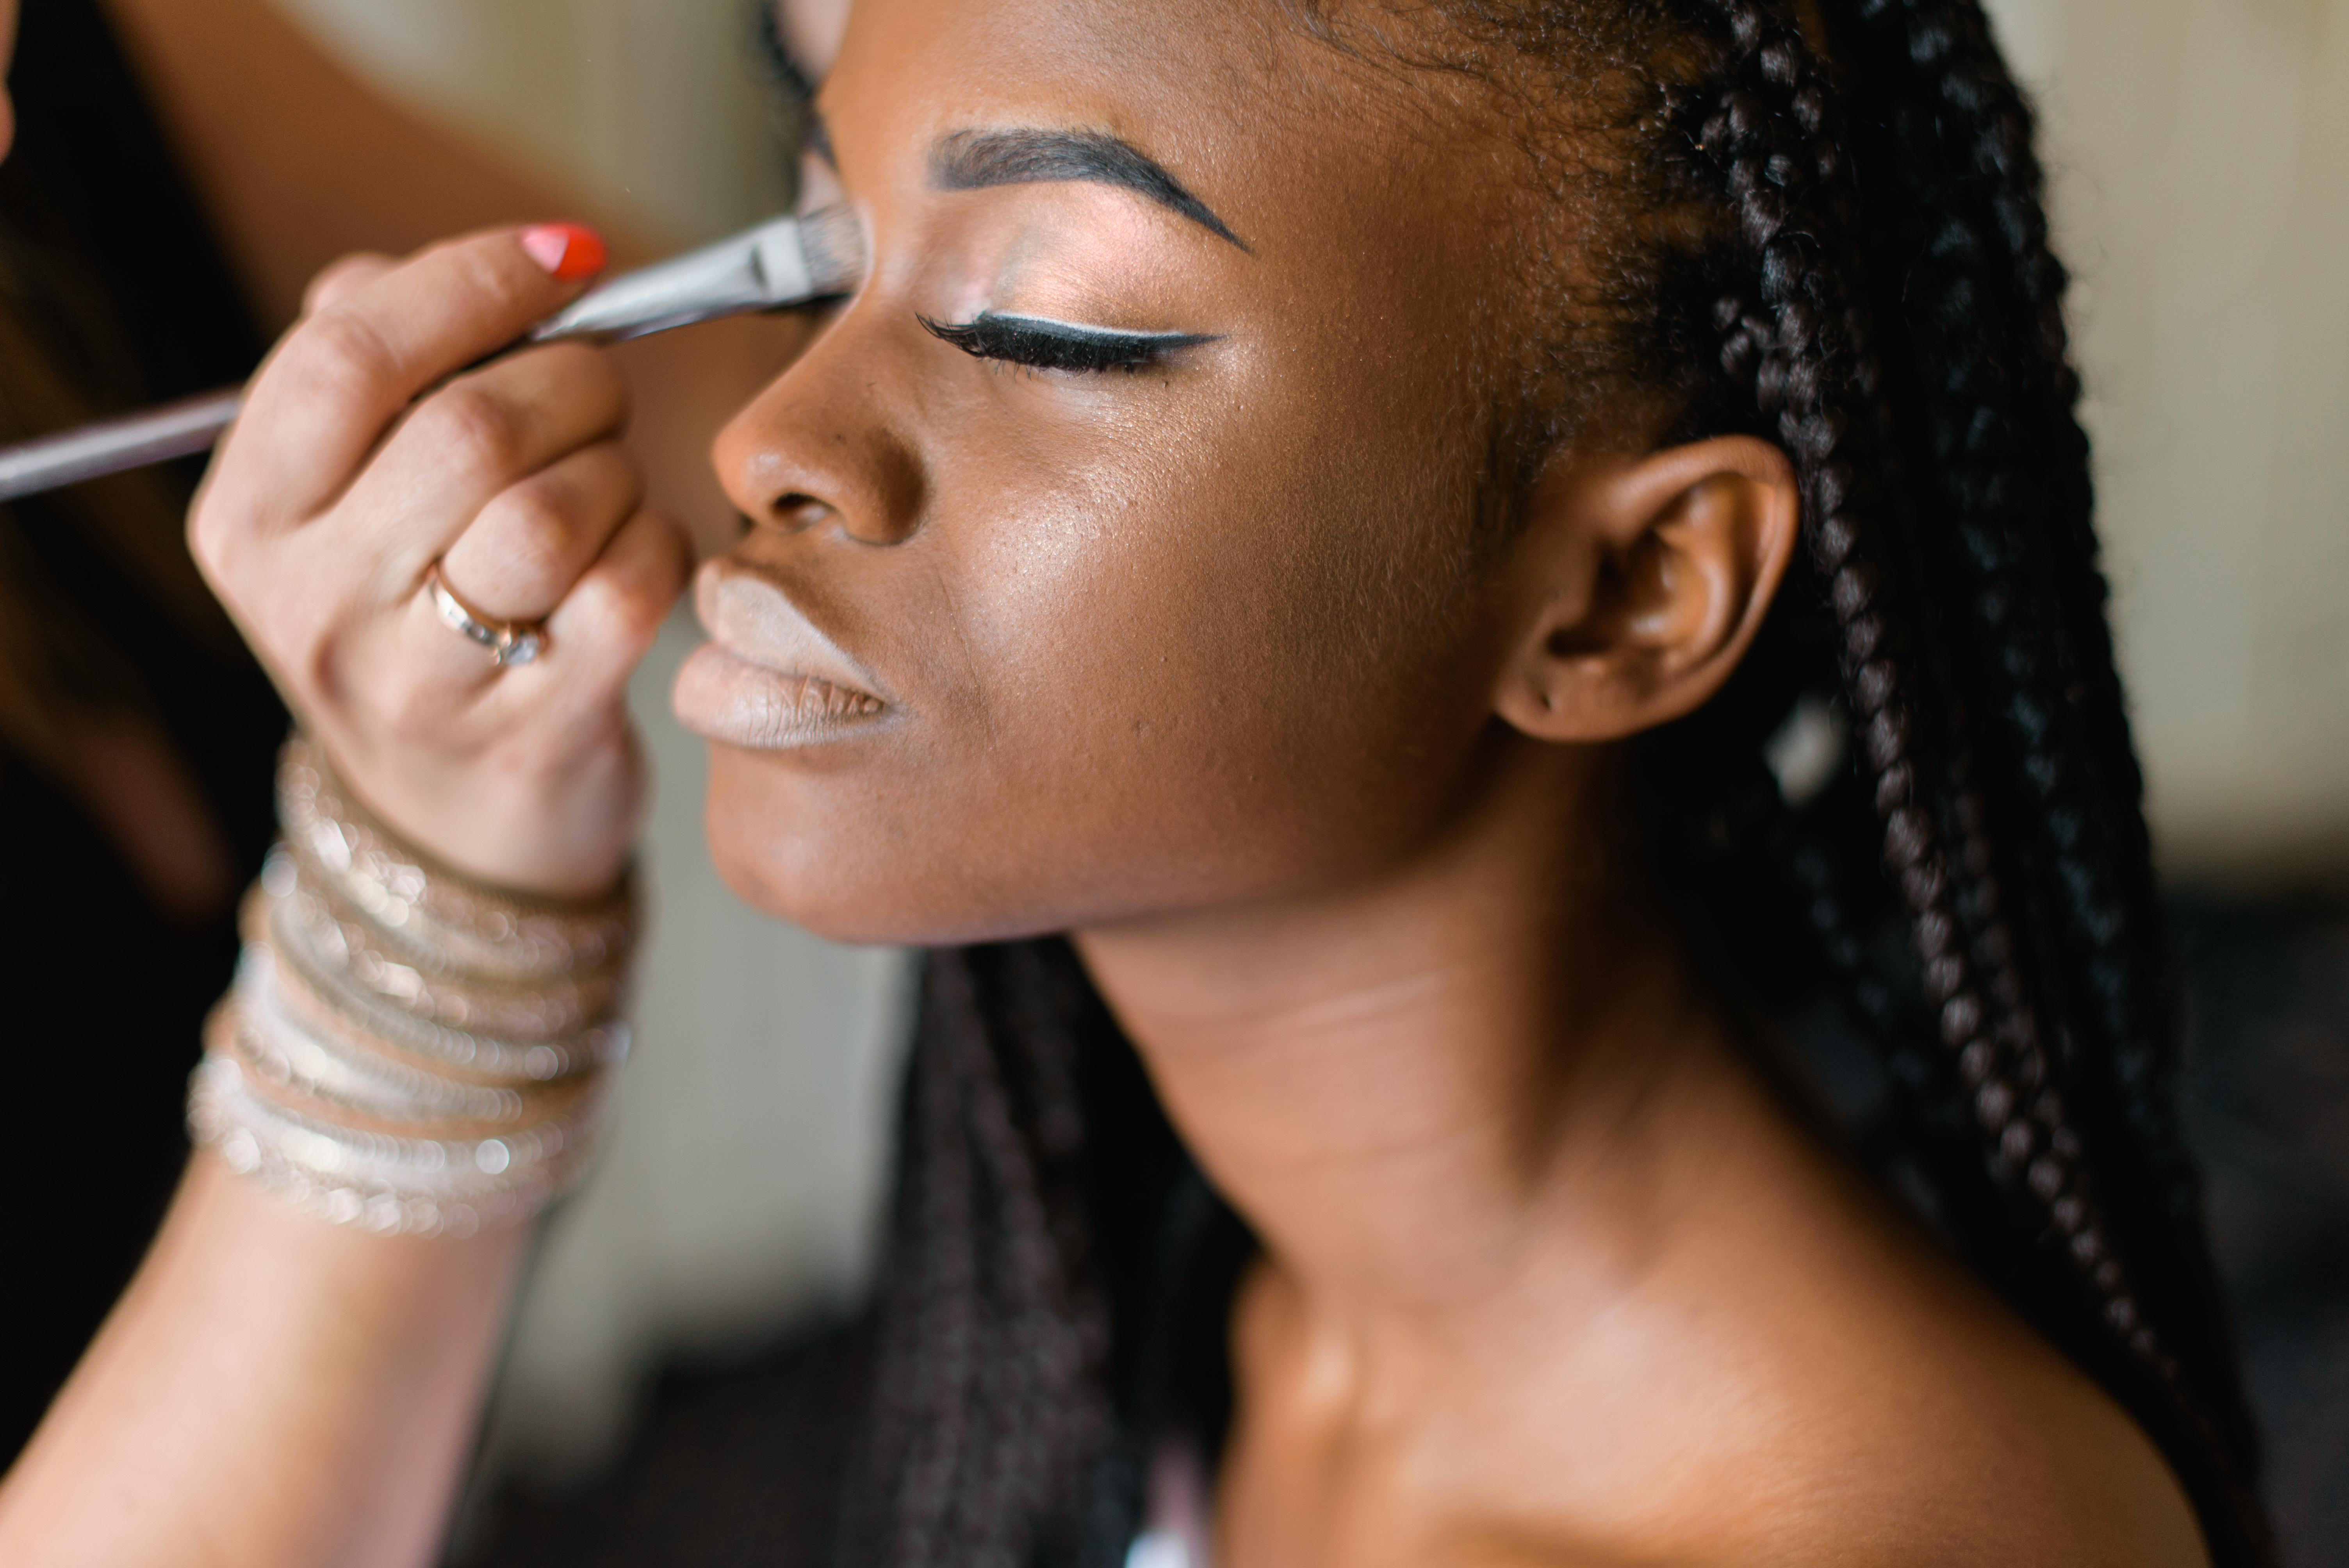 beautiful black woman with braids getting her makeup done